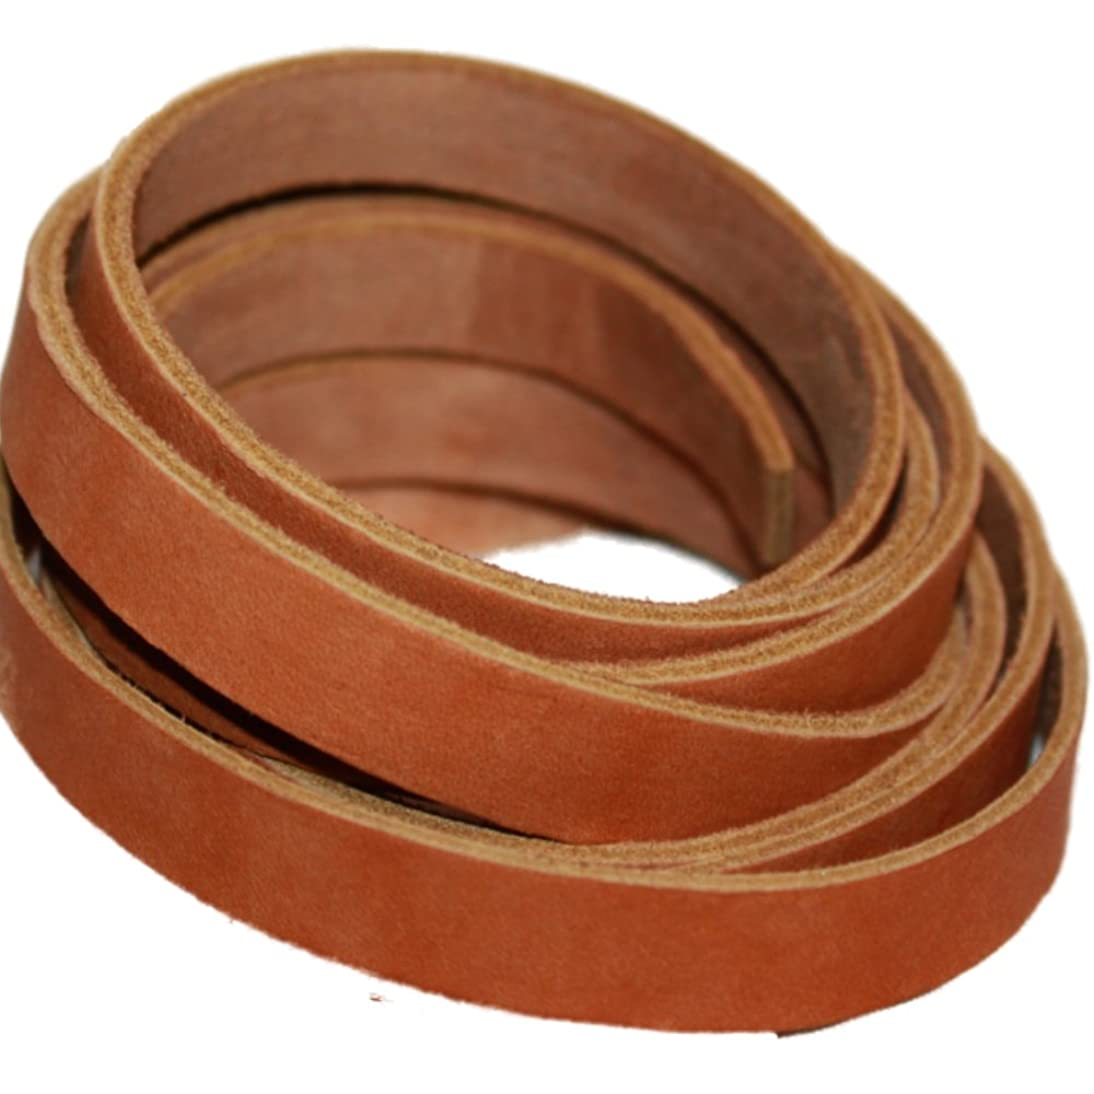 TOFL Leather Strap Tan 1/2 Inch Wide and 72 Inches Long.